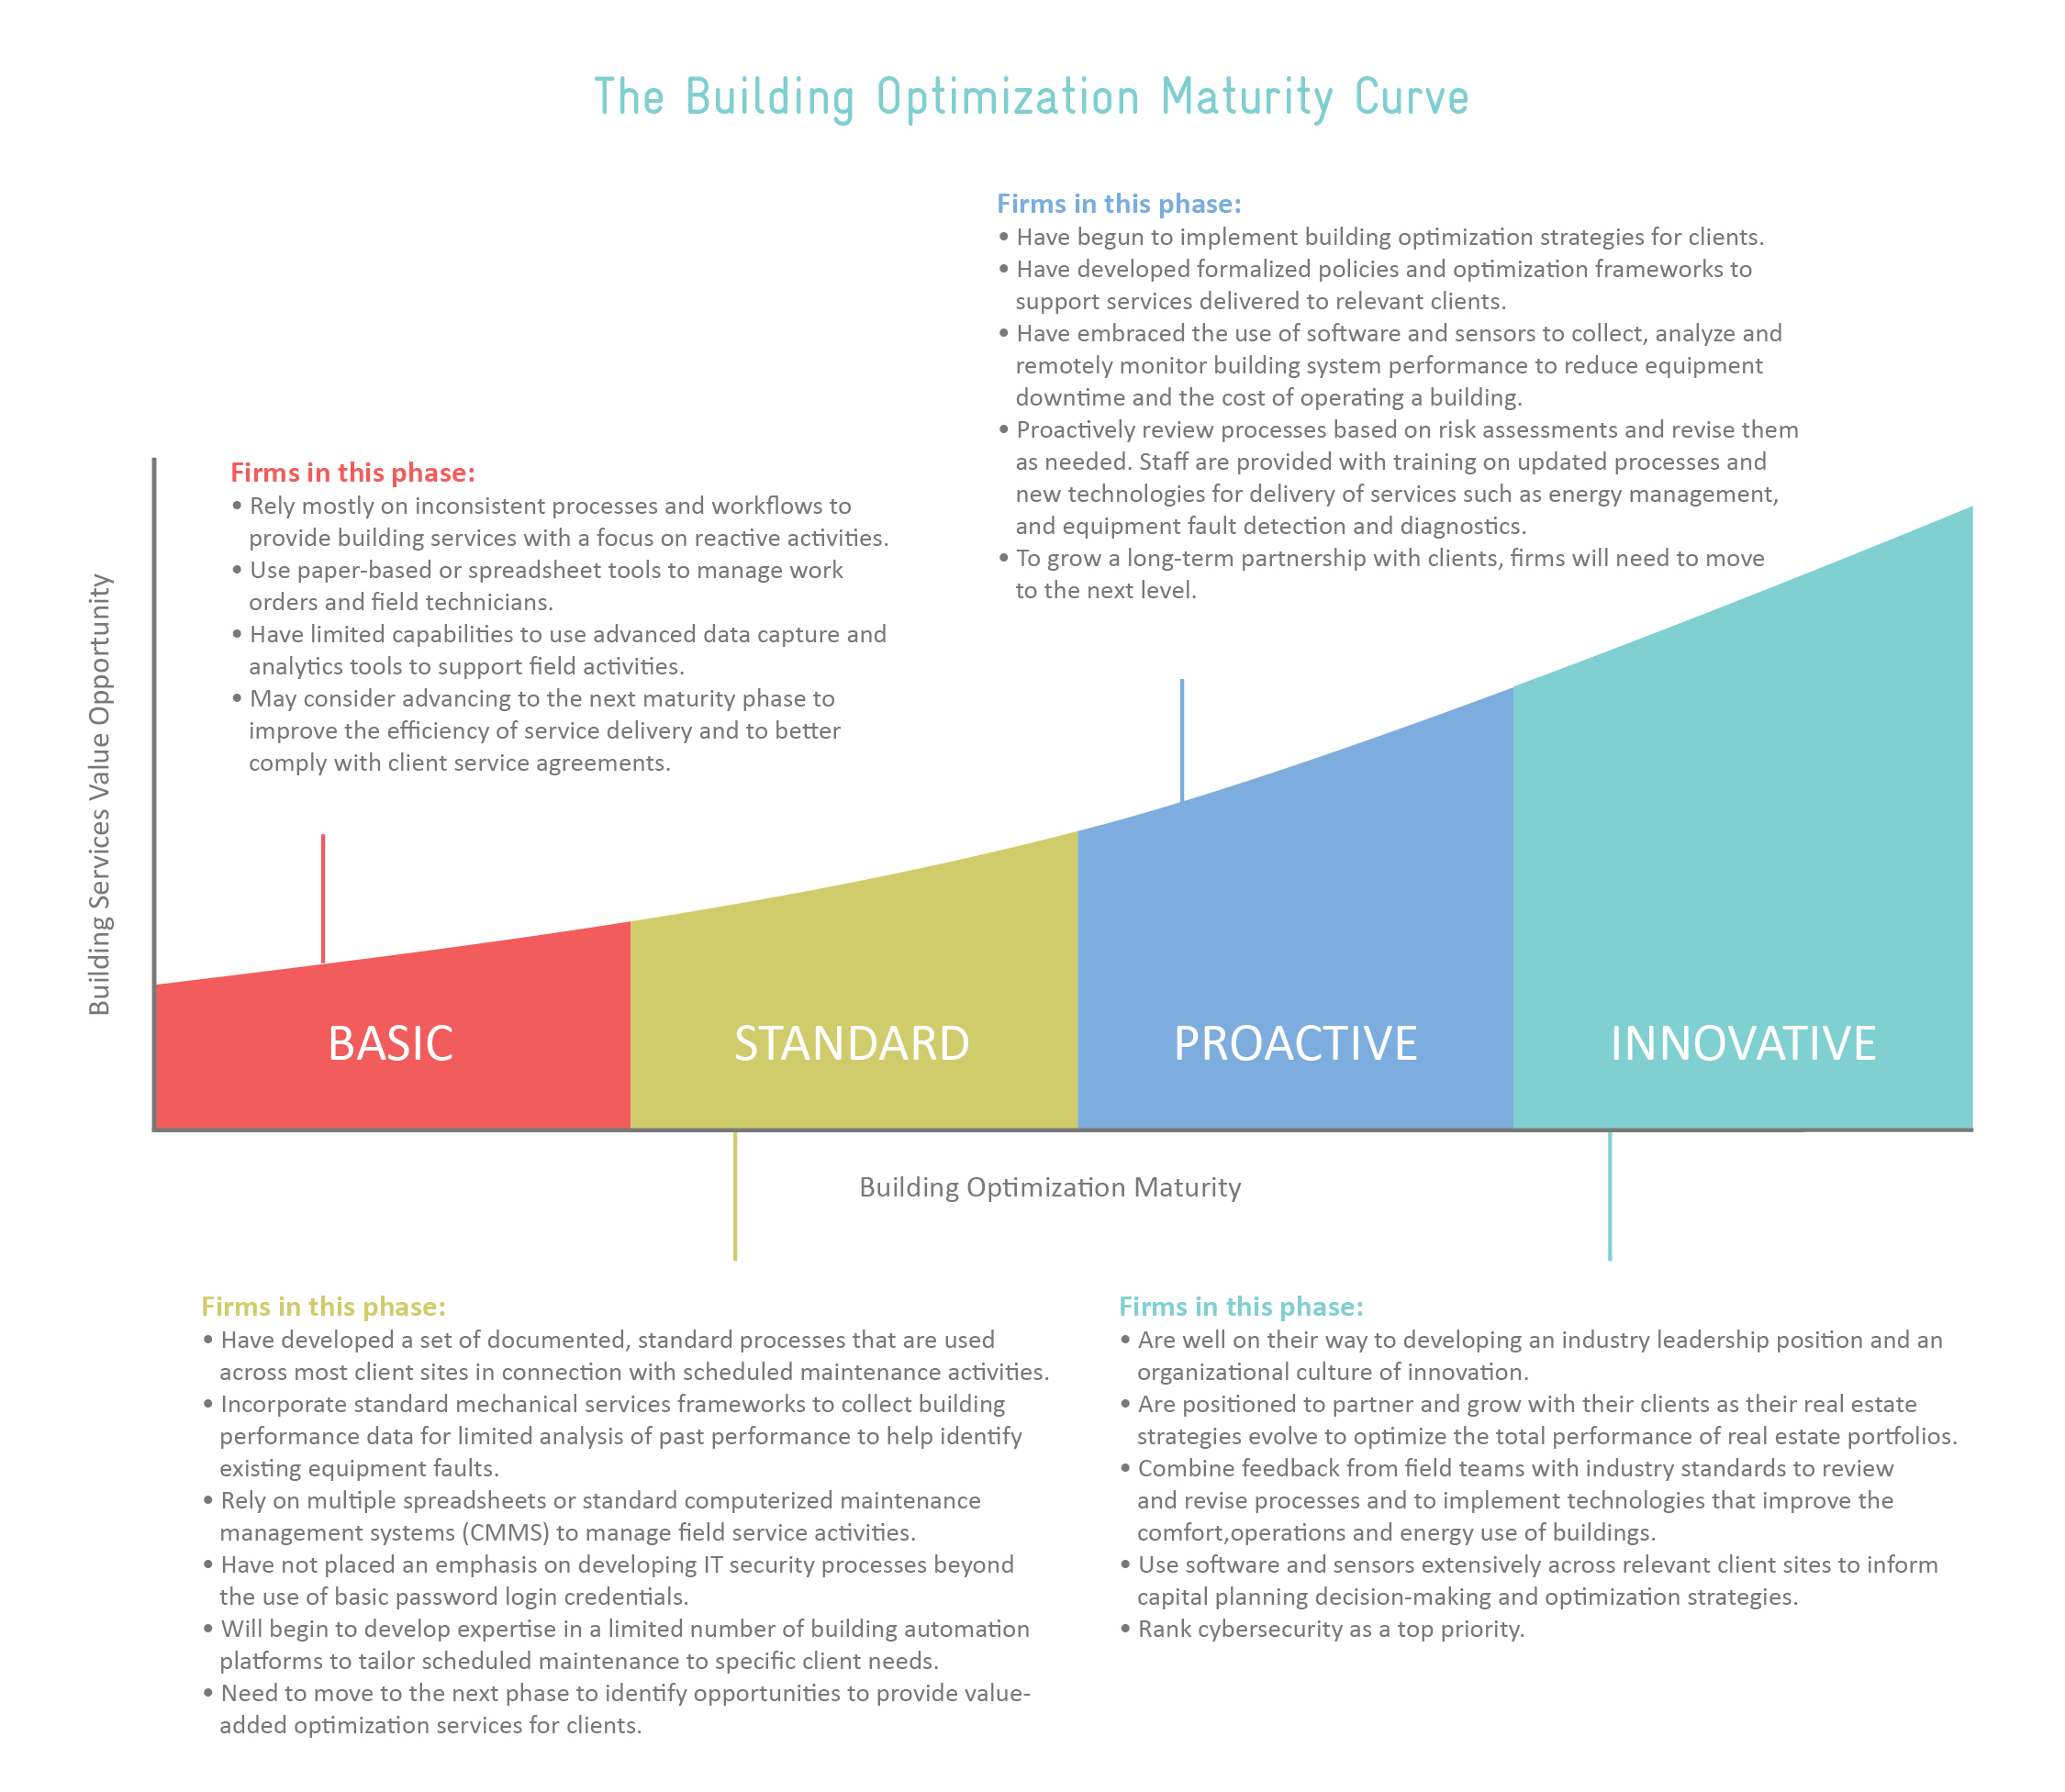 The Building Optimization Maturity Curve